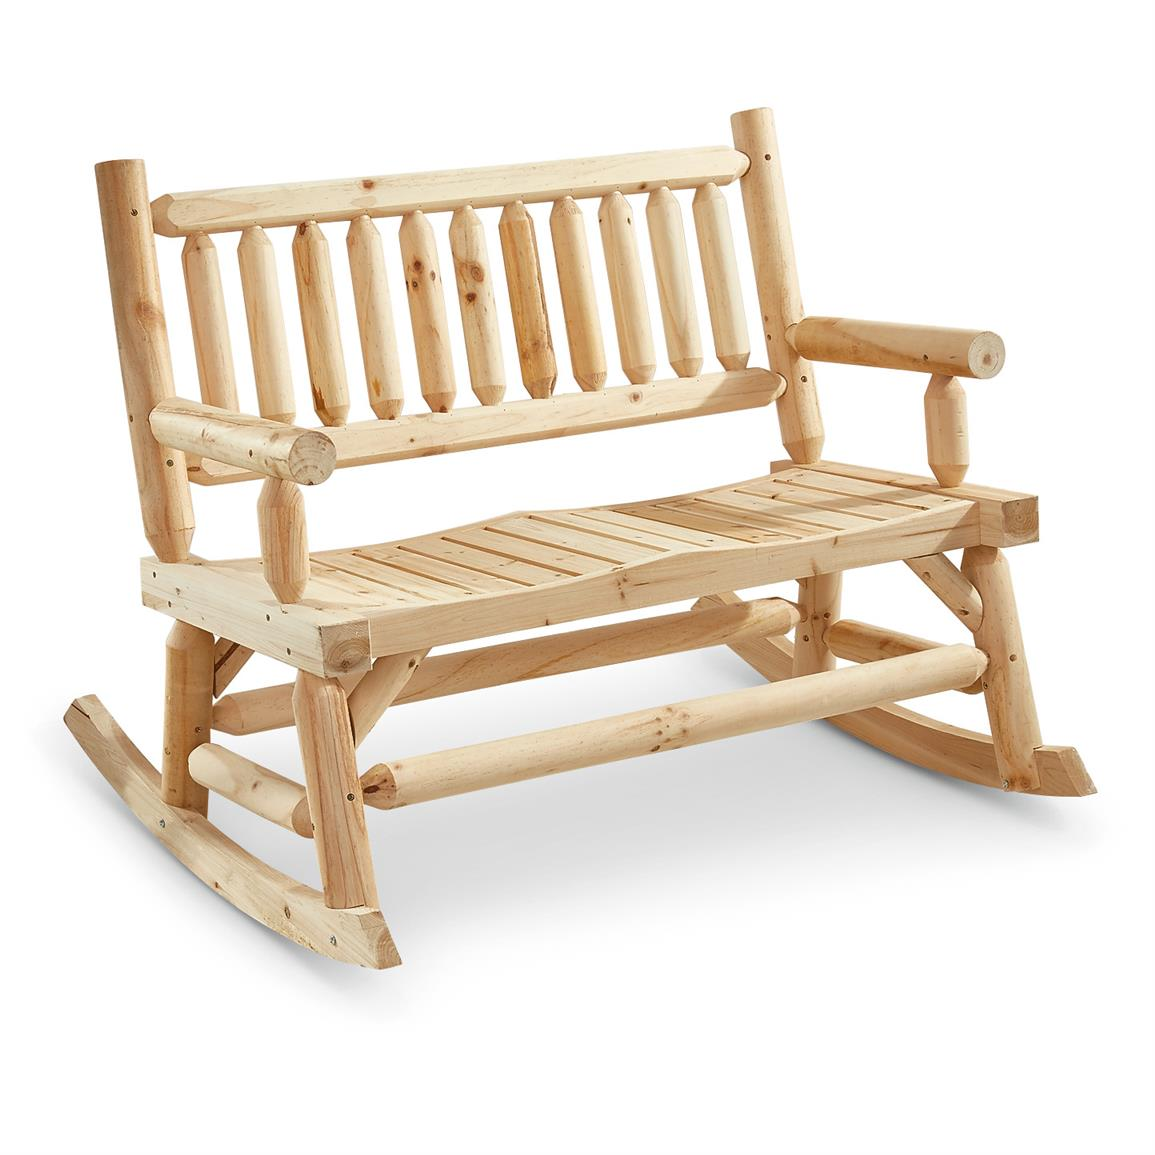 CASTLECREEK 2-Seat Wooden Rocking Bench